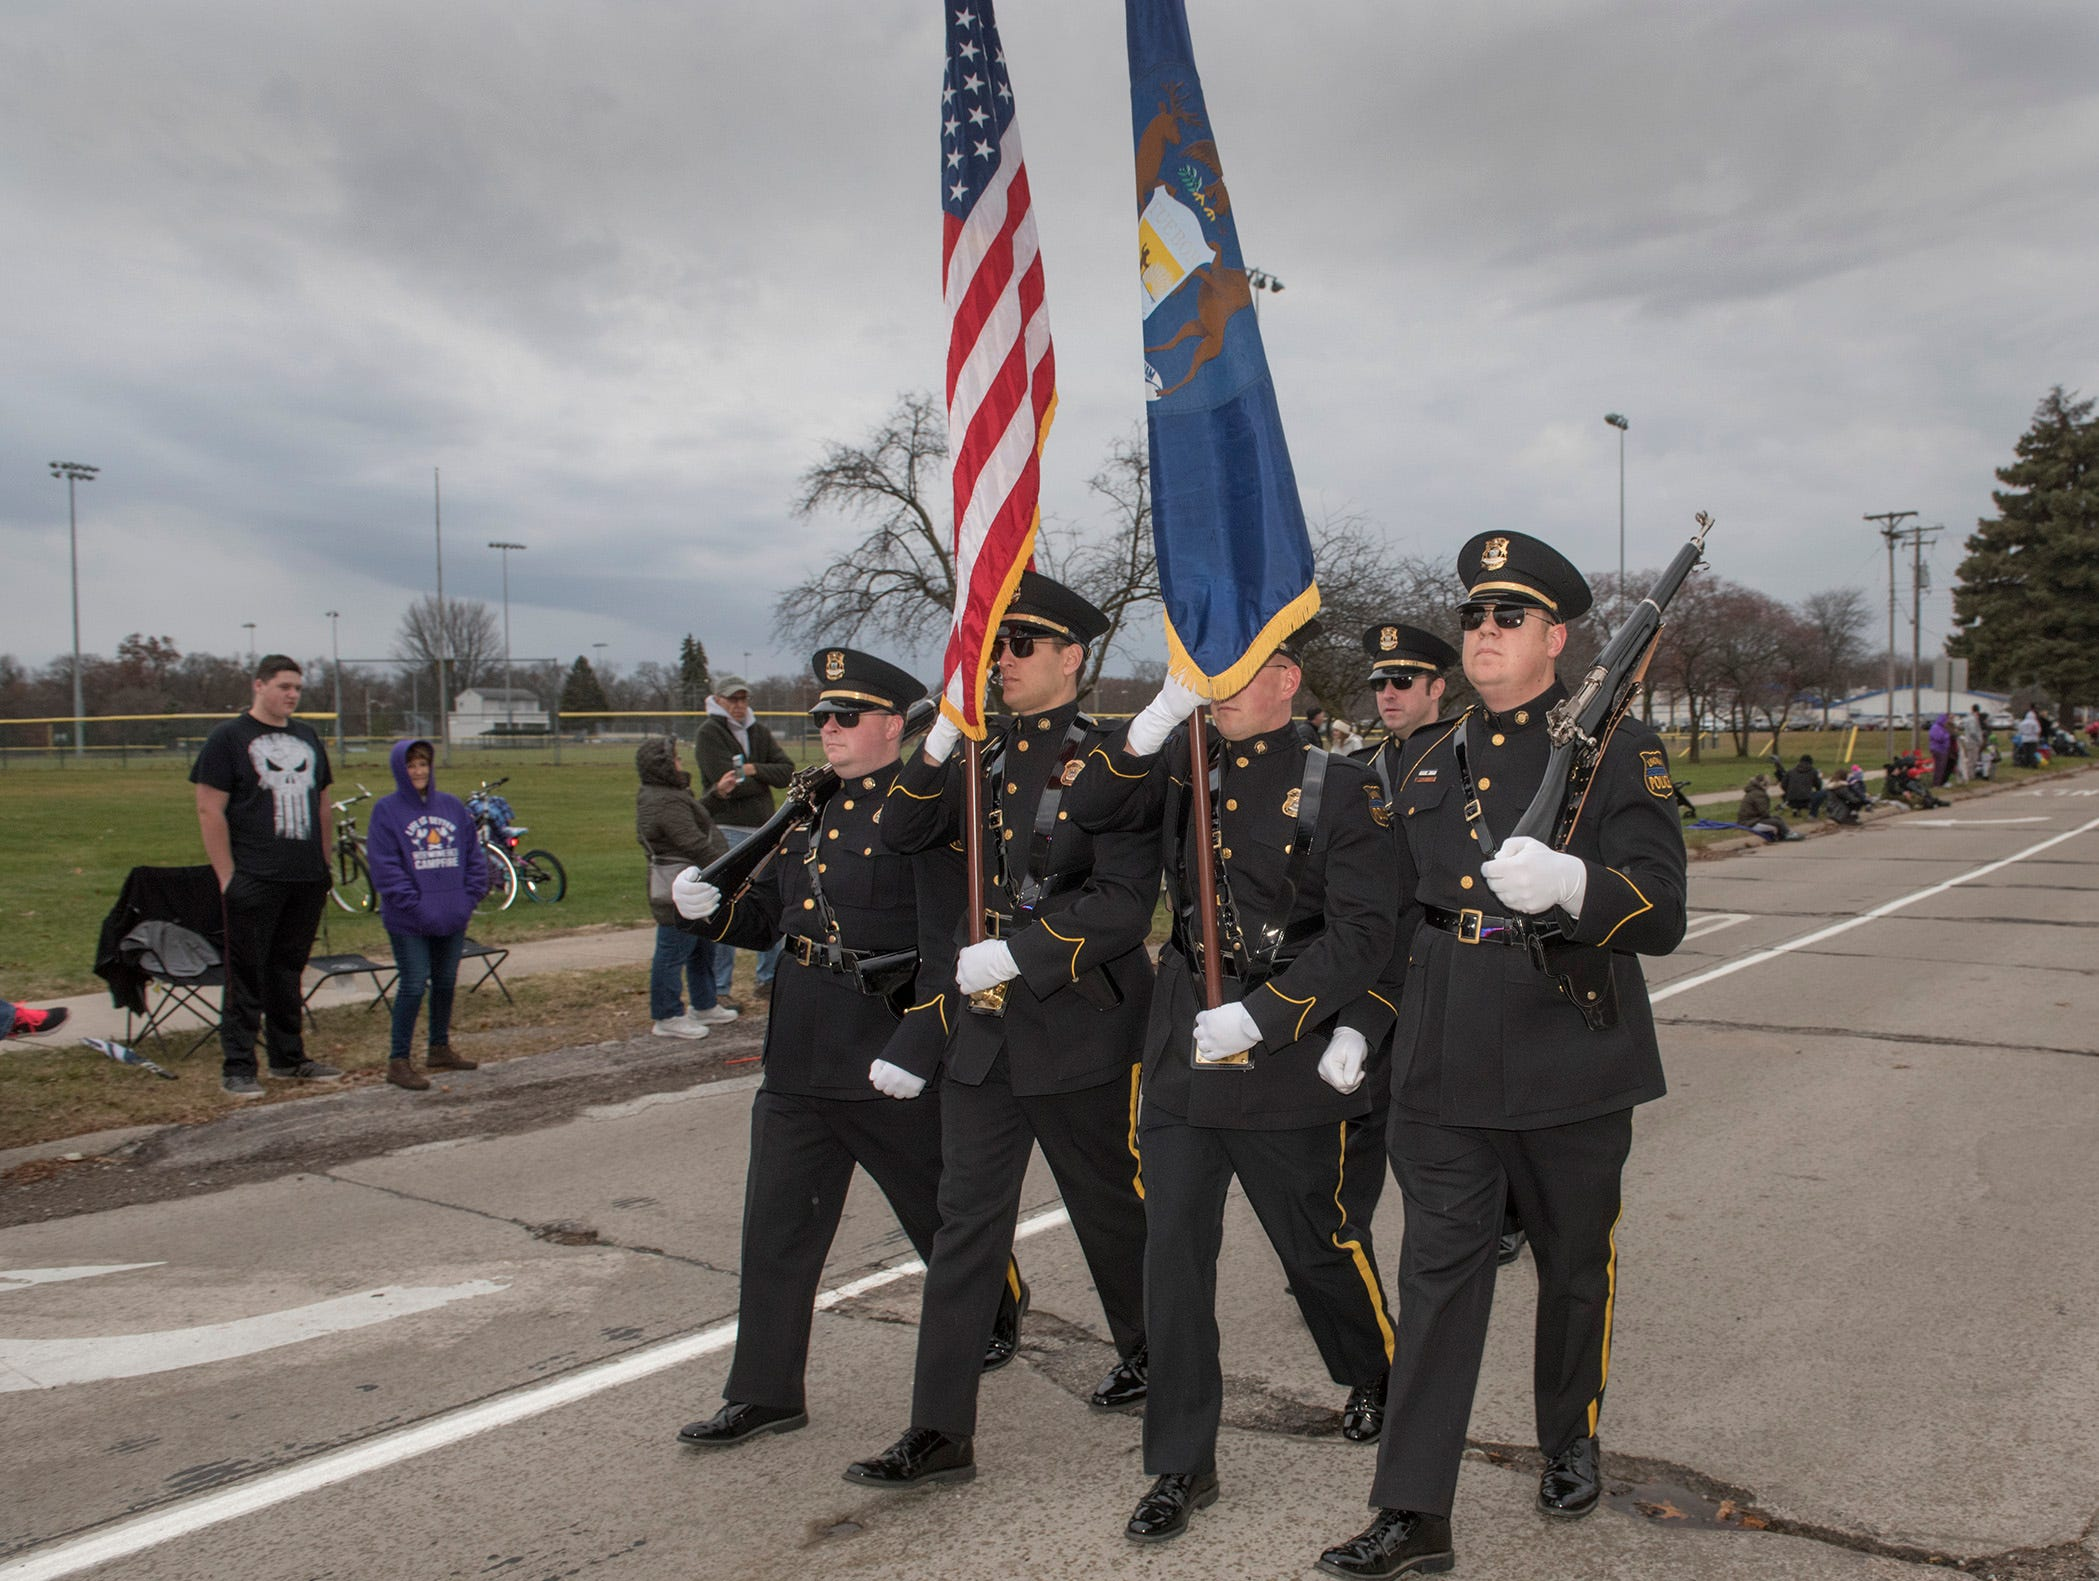 Livonia Police Honor Guard leads off the parade,